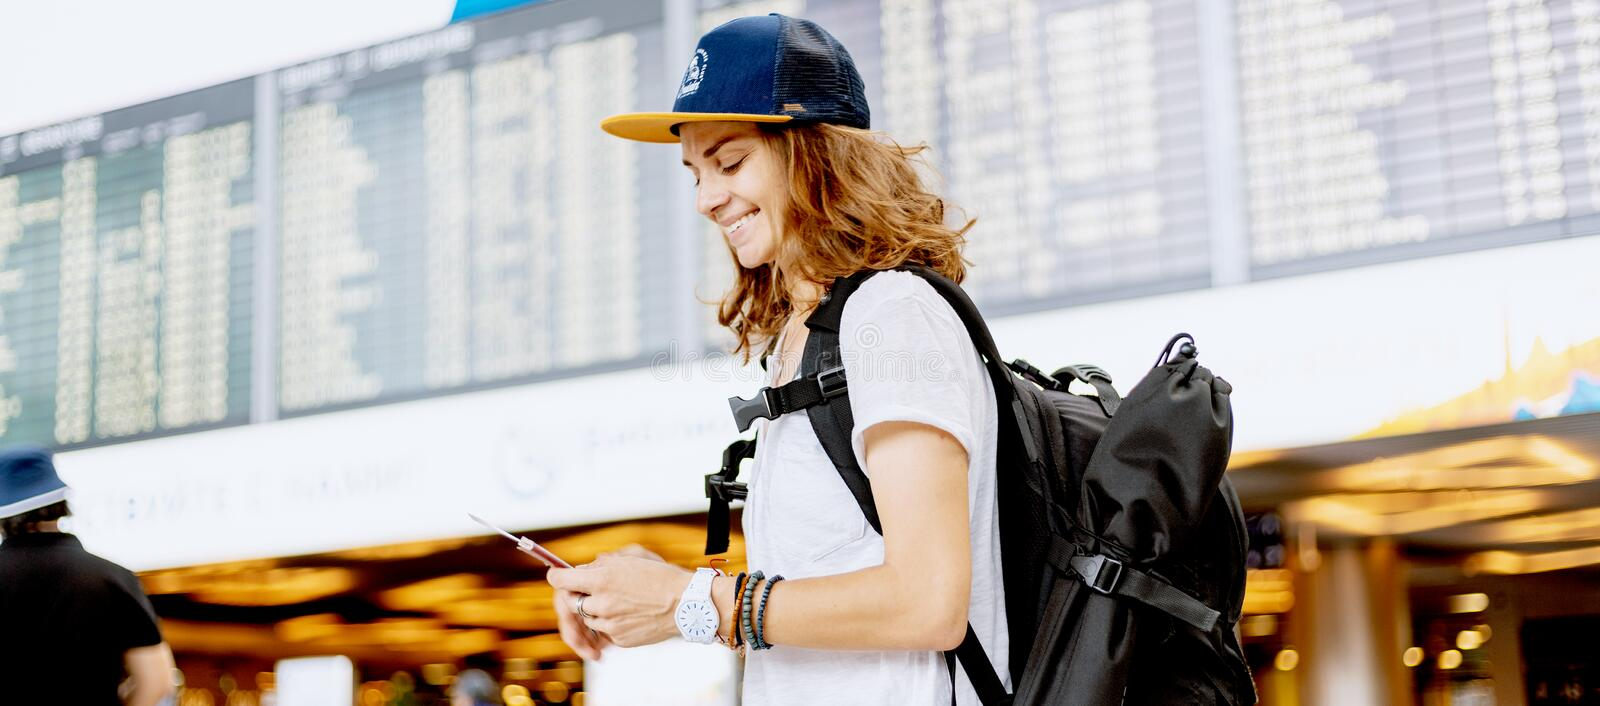 Happy young girl traveler at the airport with a backpack on the background of a departures board royalty free stock image